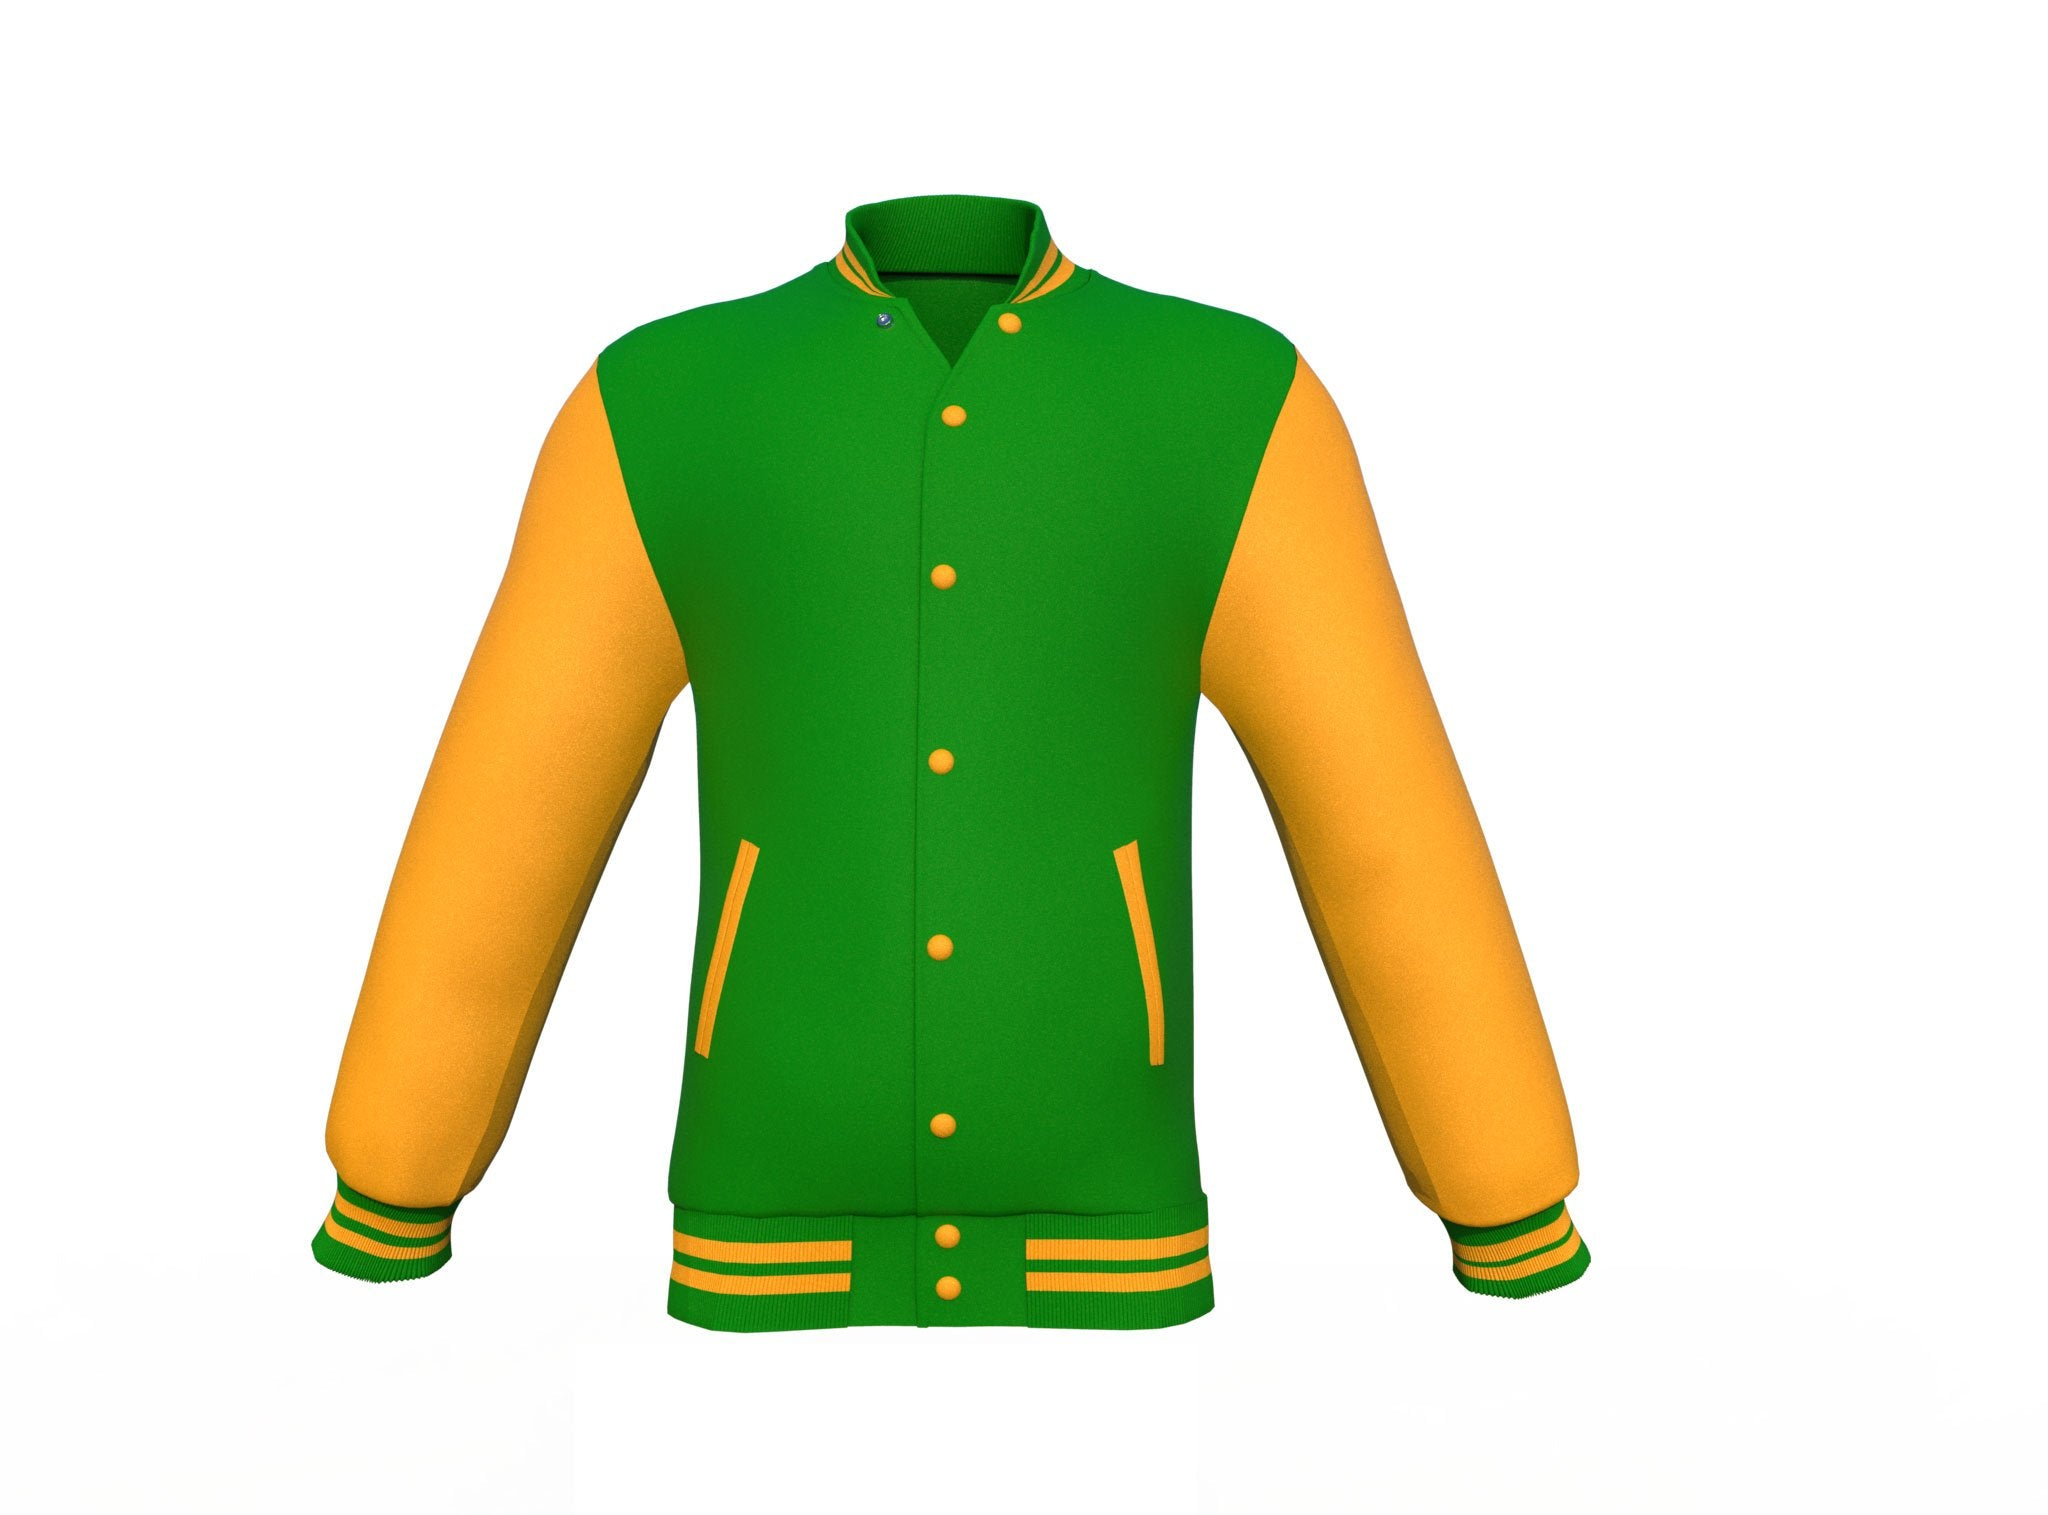 Dark Green Varsity Letterman Jacket with Gold Sleeves